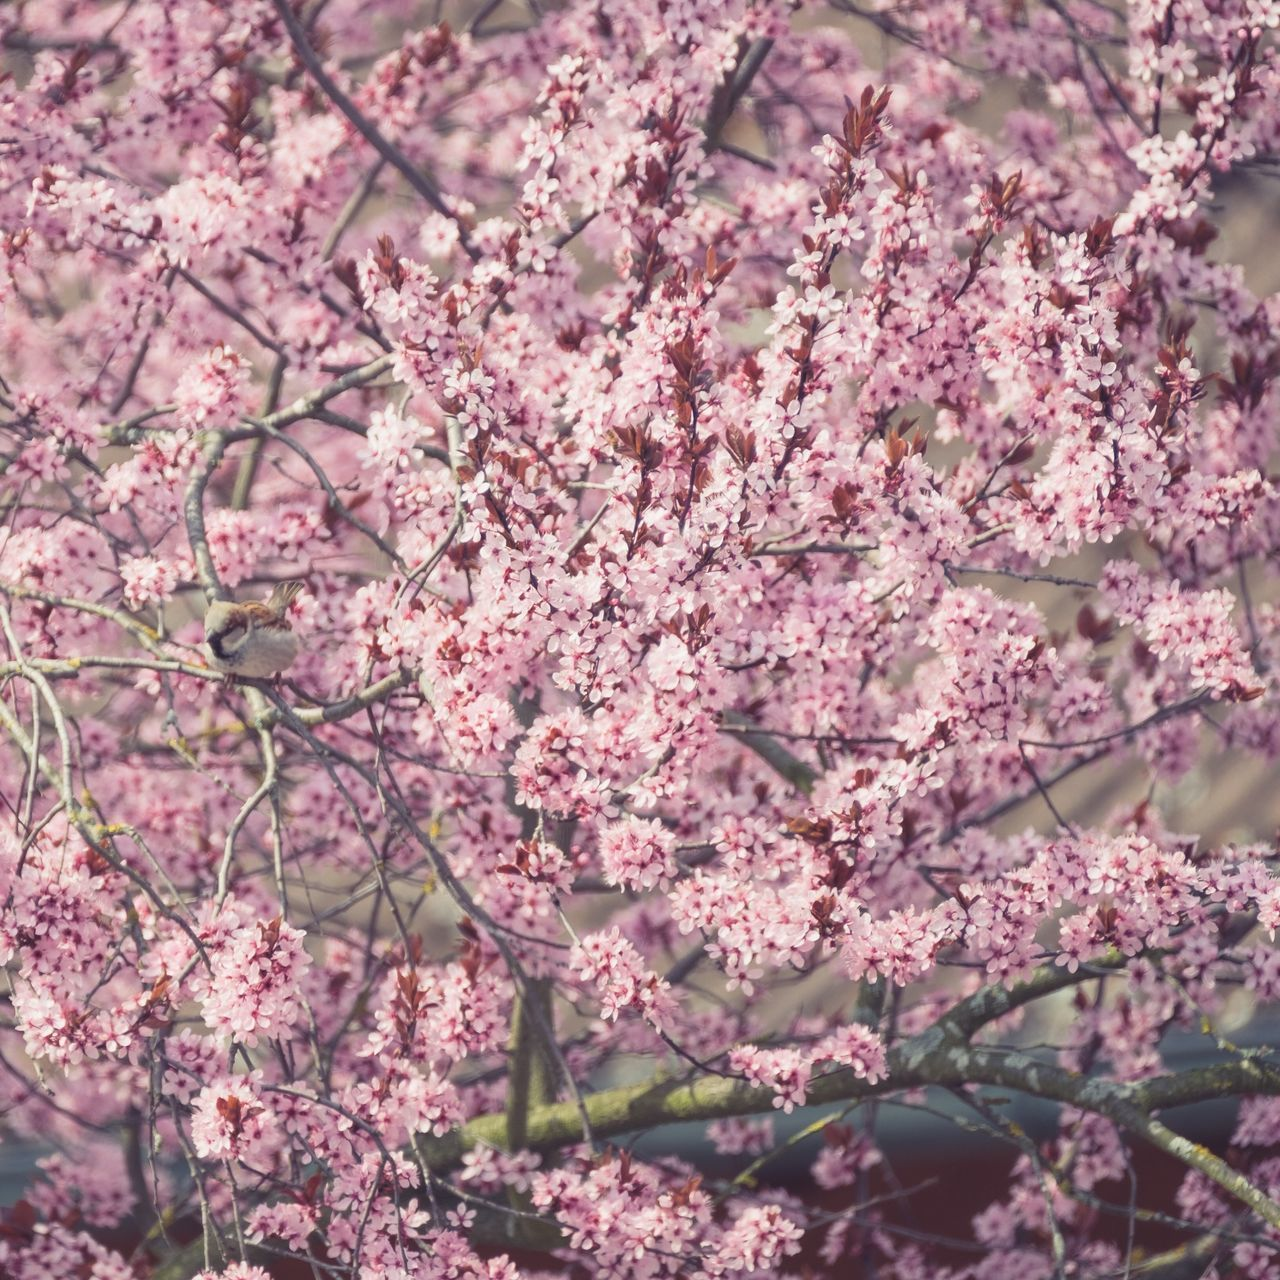 flowering plant, flower, plant, fragility, beauty in nature, freshness, growth, pink color, vulnerability, springtime, tree, blossom, nature, branch, day, cherry blossom, no people, botany, close-up, outdoors, cherry tree, flower head, bunch of flowers, spring, softness, lilac